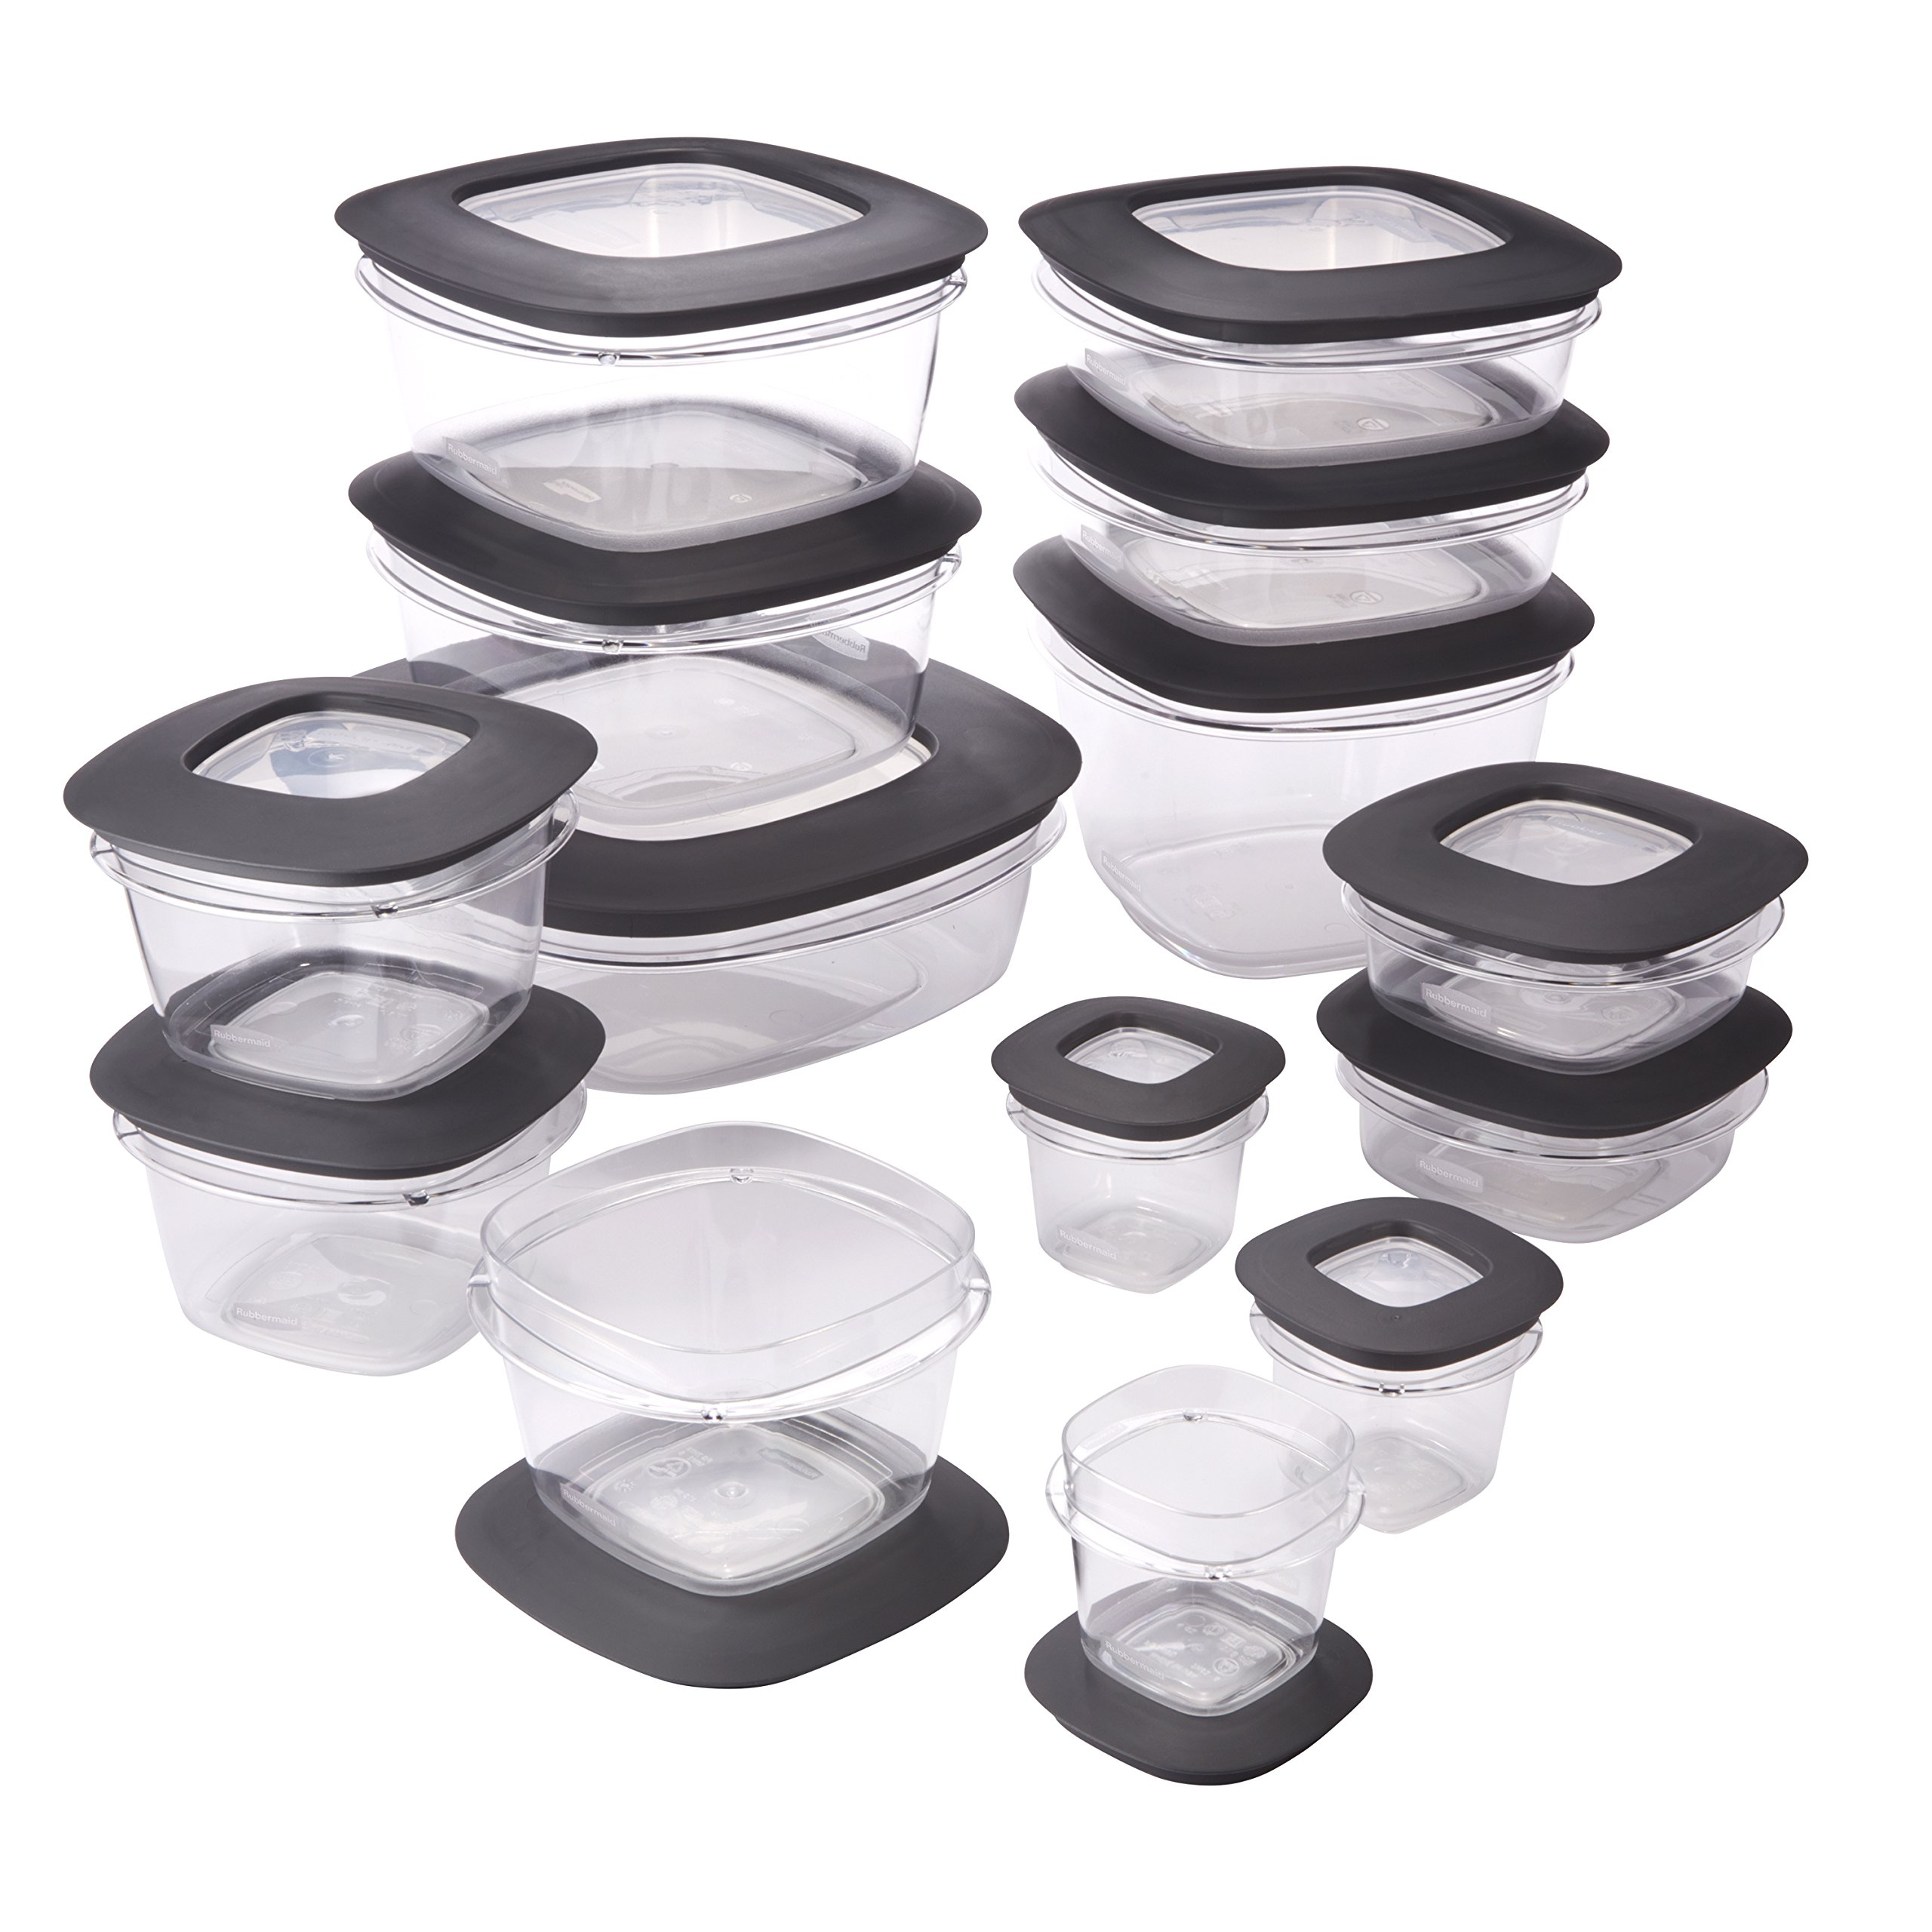 Rubbermaid Premier Easy Find Lids Food Storage Containers, Gray, Set of 28 1951294 by Rubbermaid